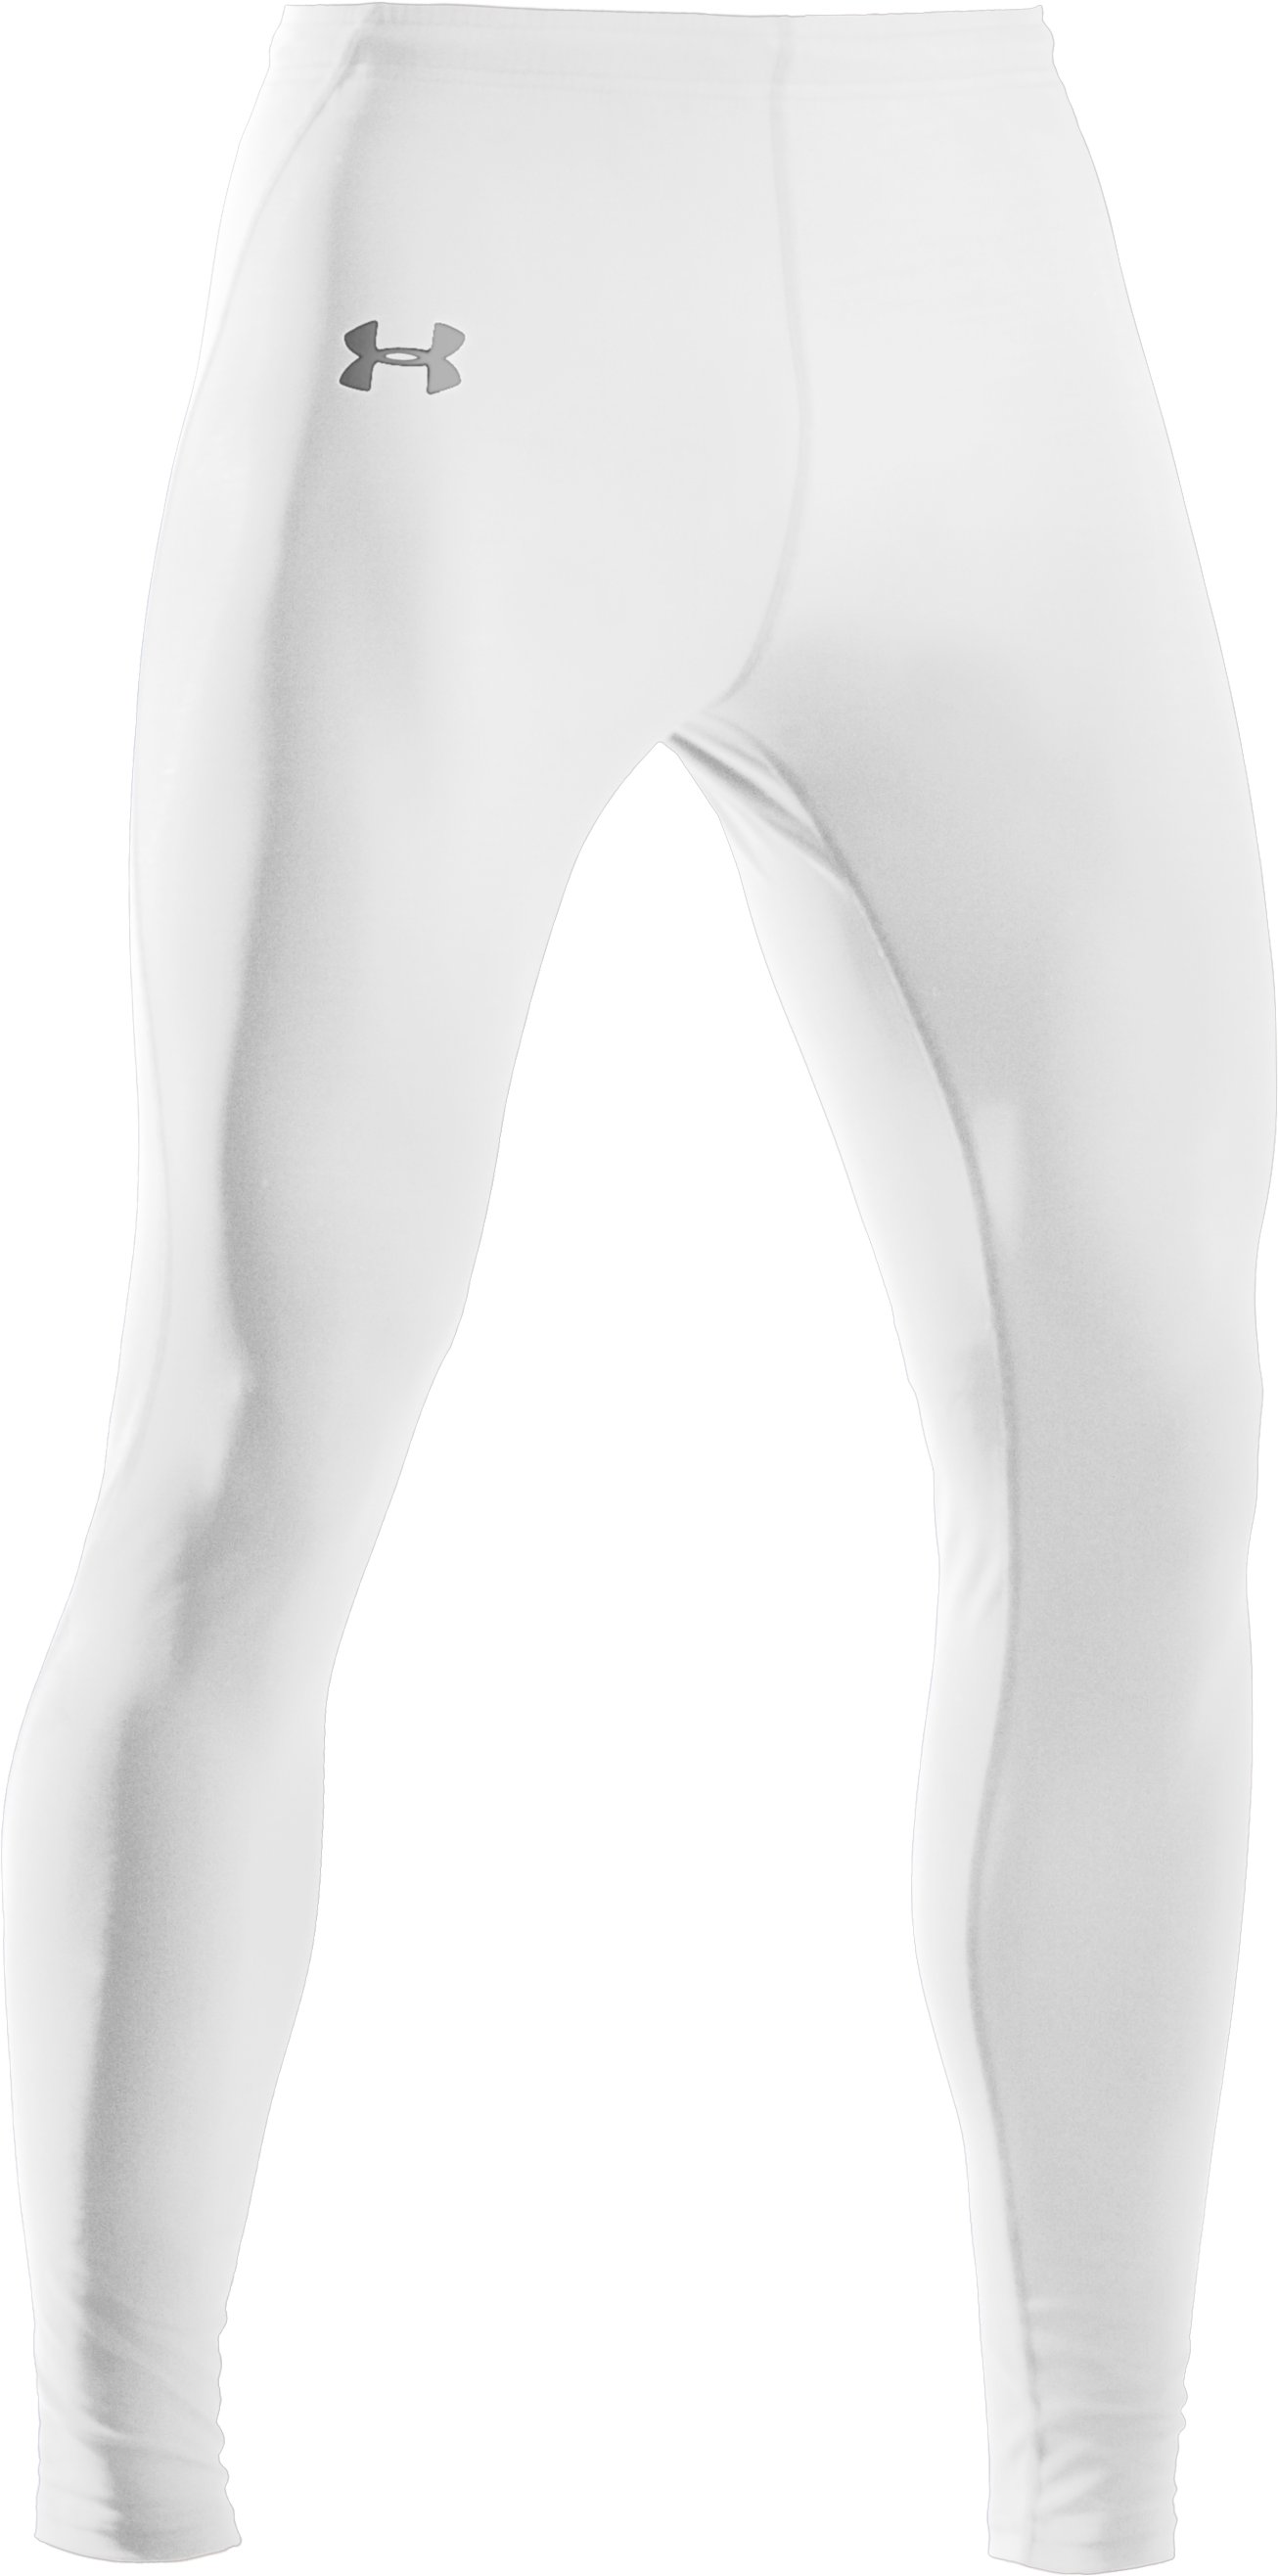 Men's UA HeatGear® Leggings, White